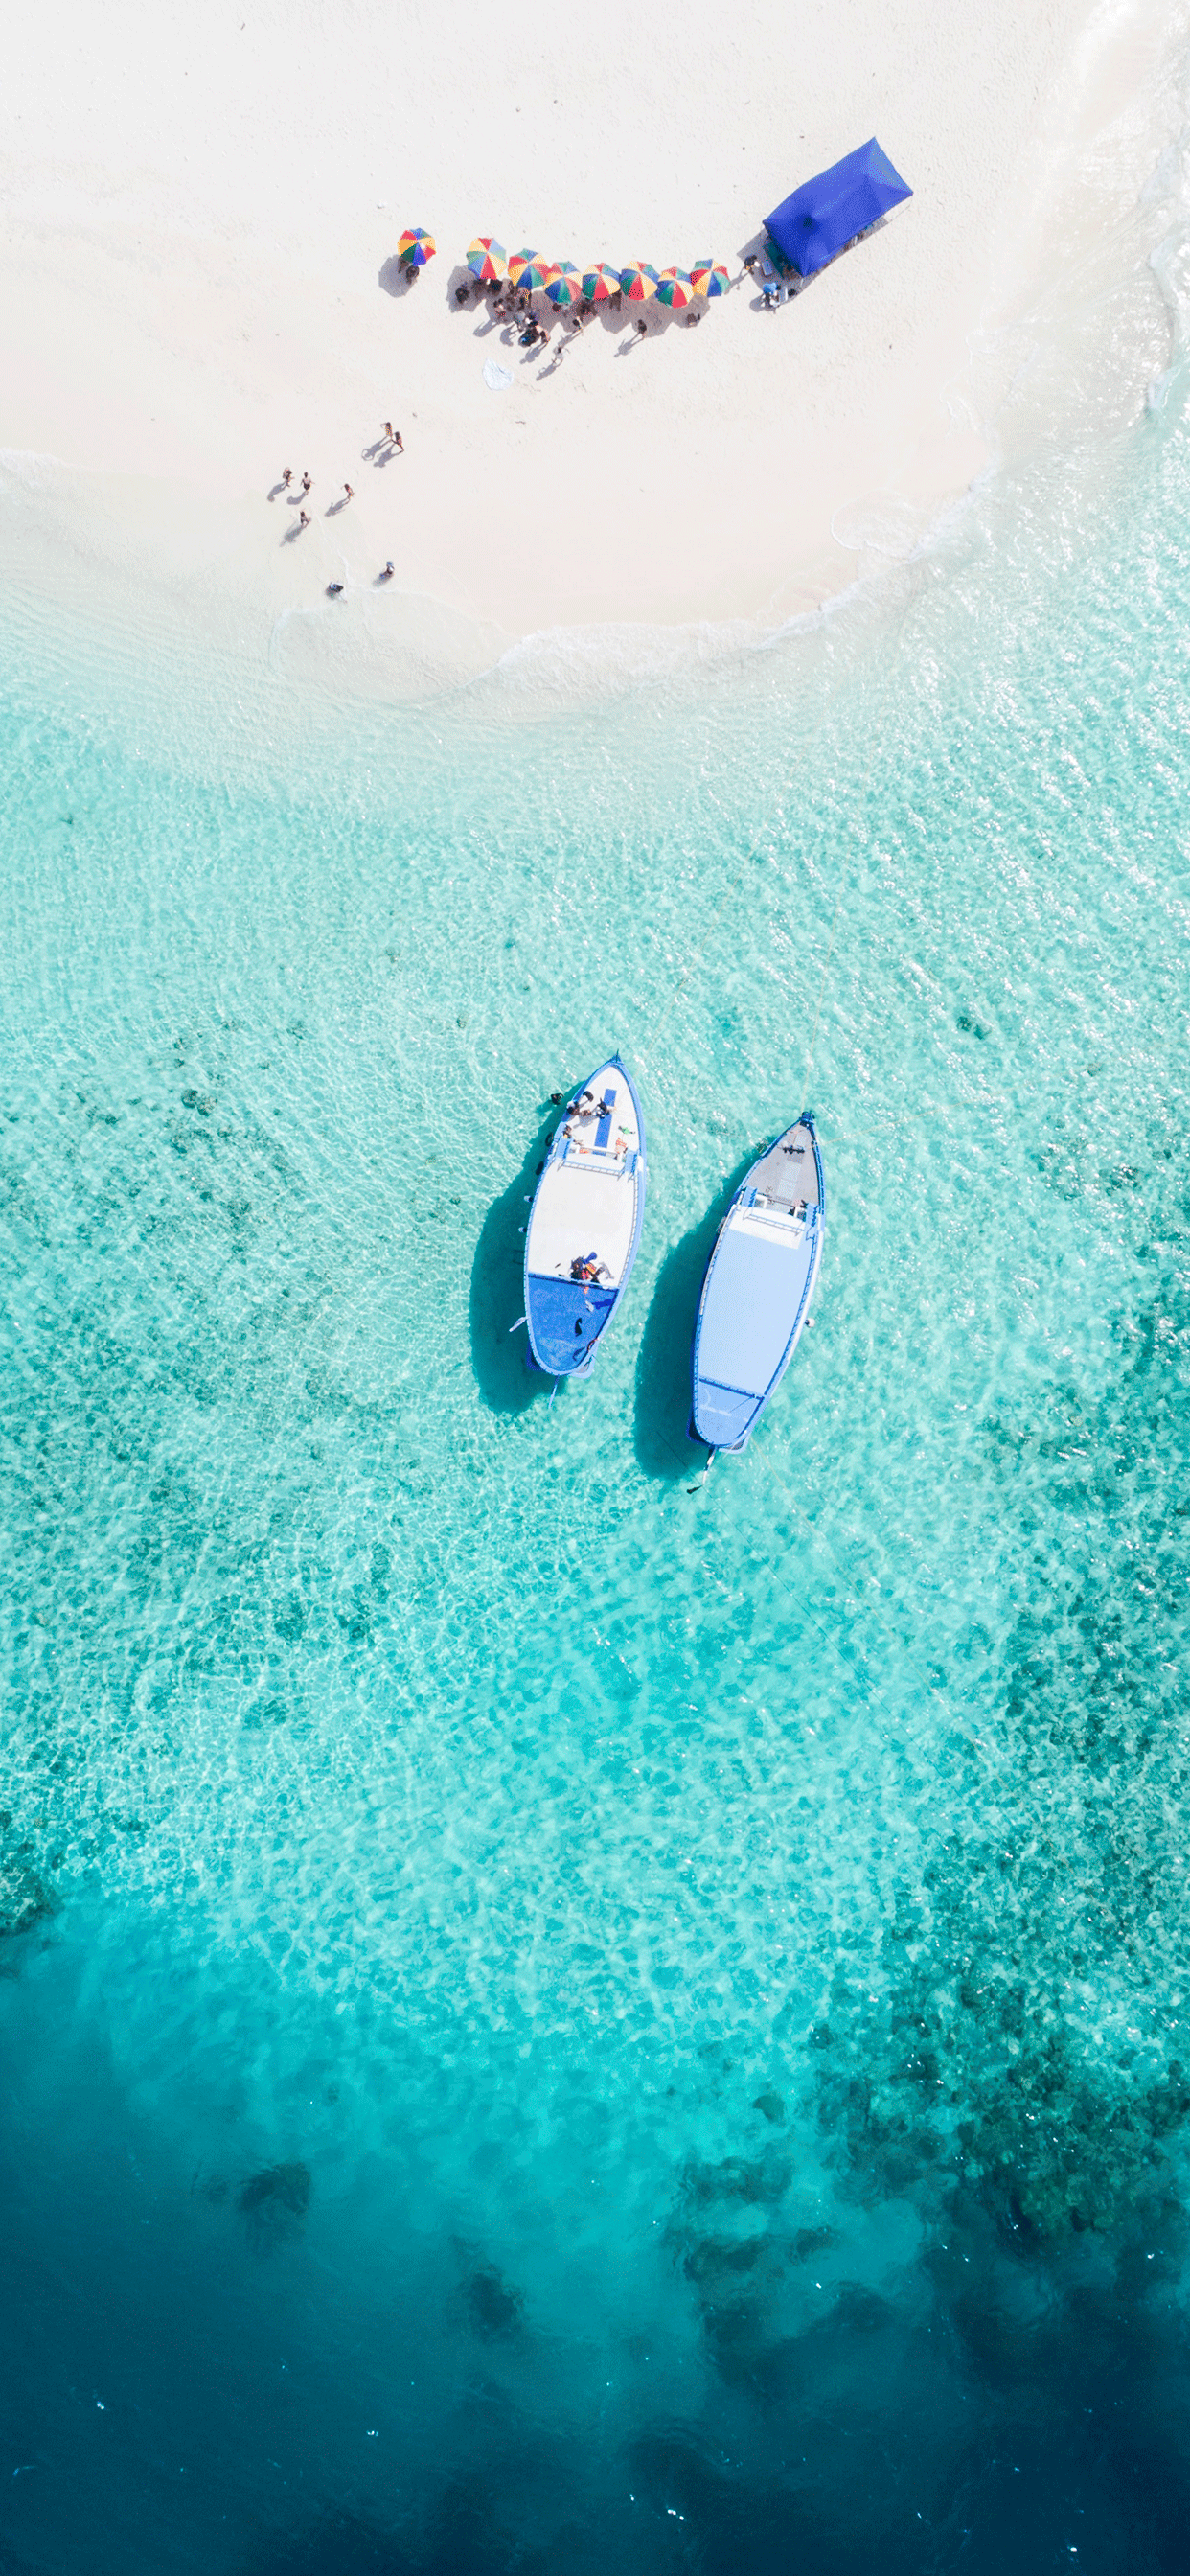 iPhone wallpapers maldives boats Fonds d'écran iPhone du 06/06/2019